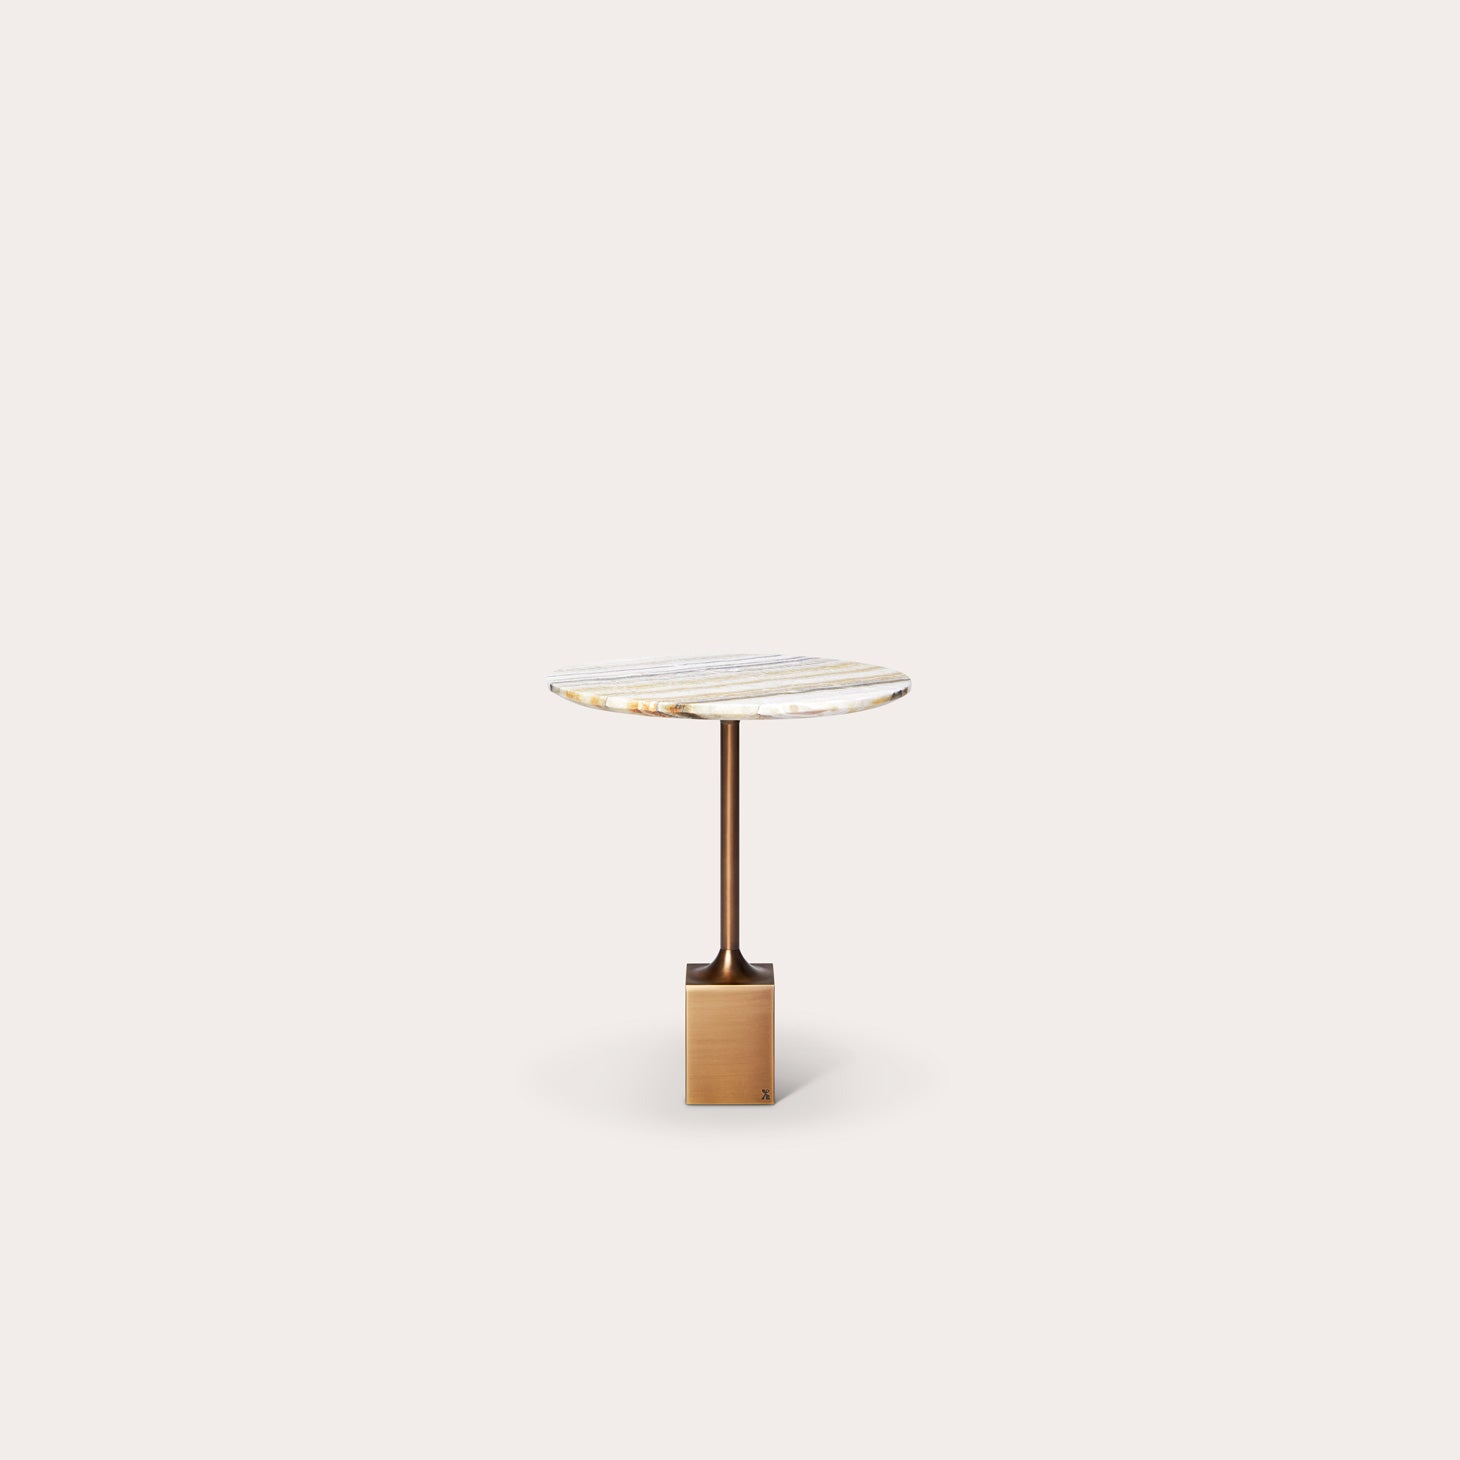 Madison Avenue Tables Yabu Pushelberg Designer Furniture Sku: 625-230-10053